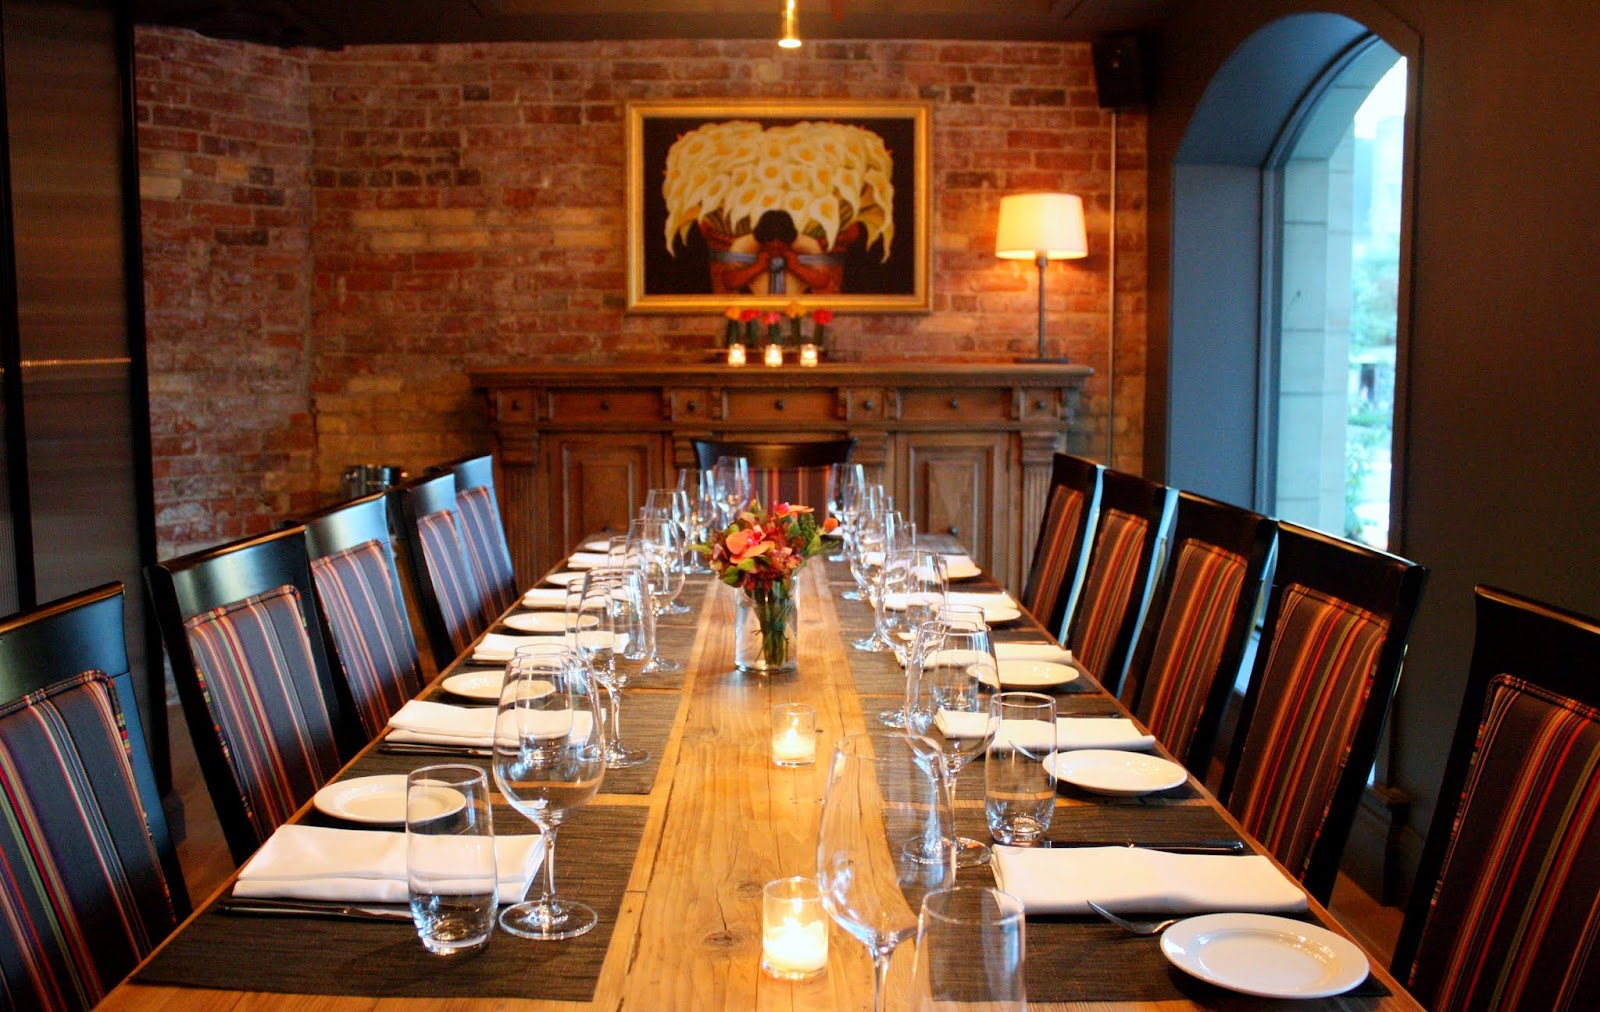 The Restaurant Features Two Private Dining Rooms That Seat 12 And 50  Respectively, Allowing For Both Intimate Private Dining And Private Event  Experiences.